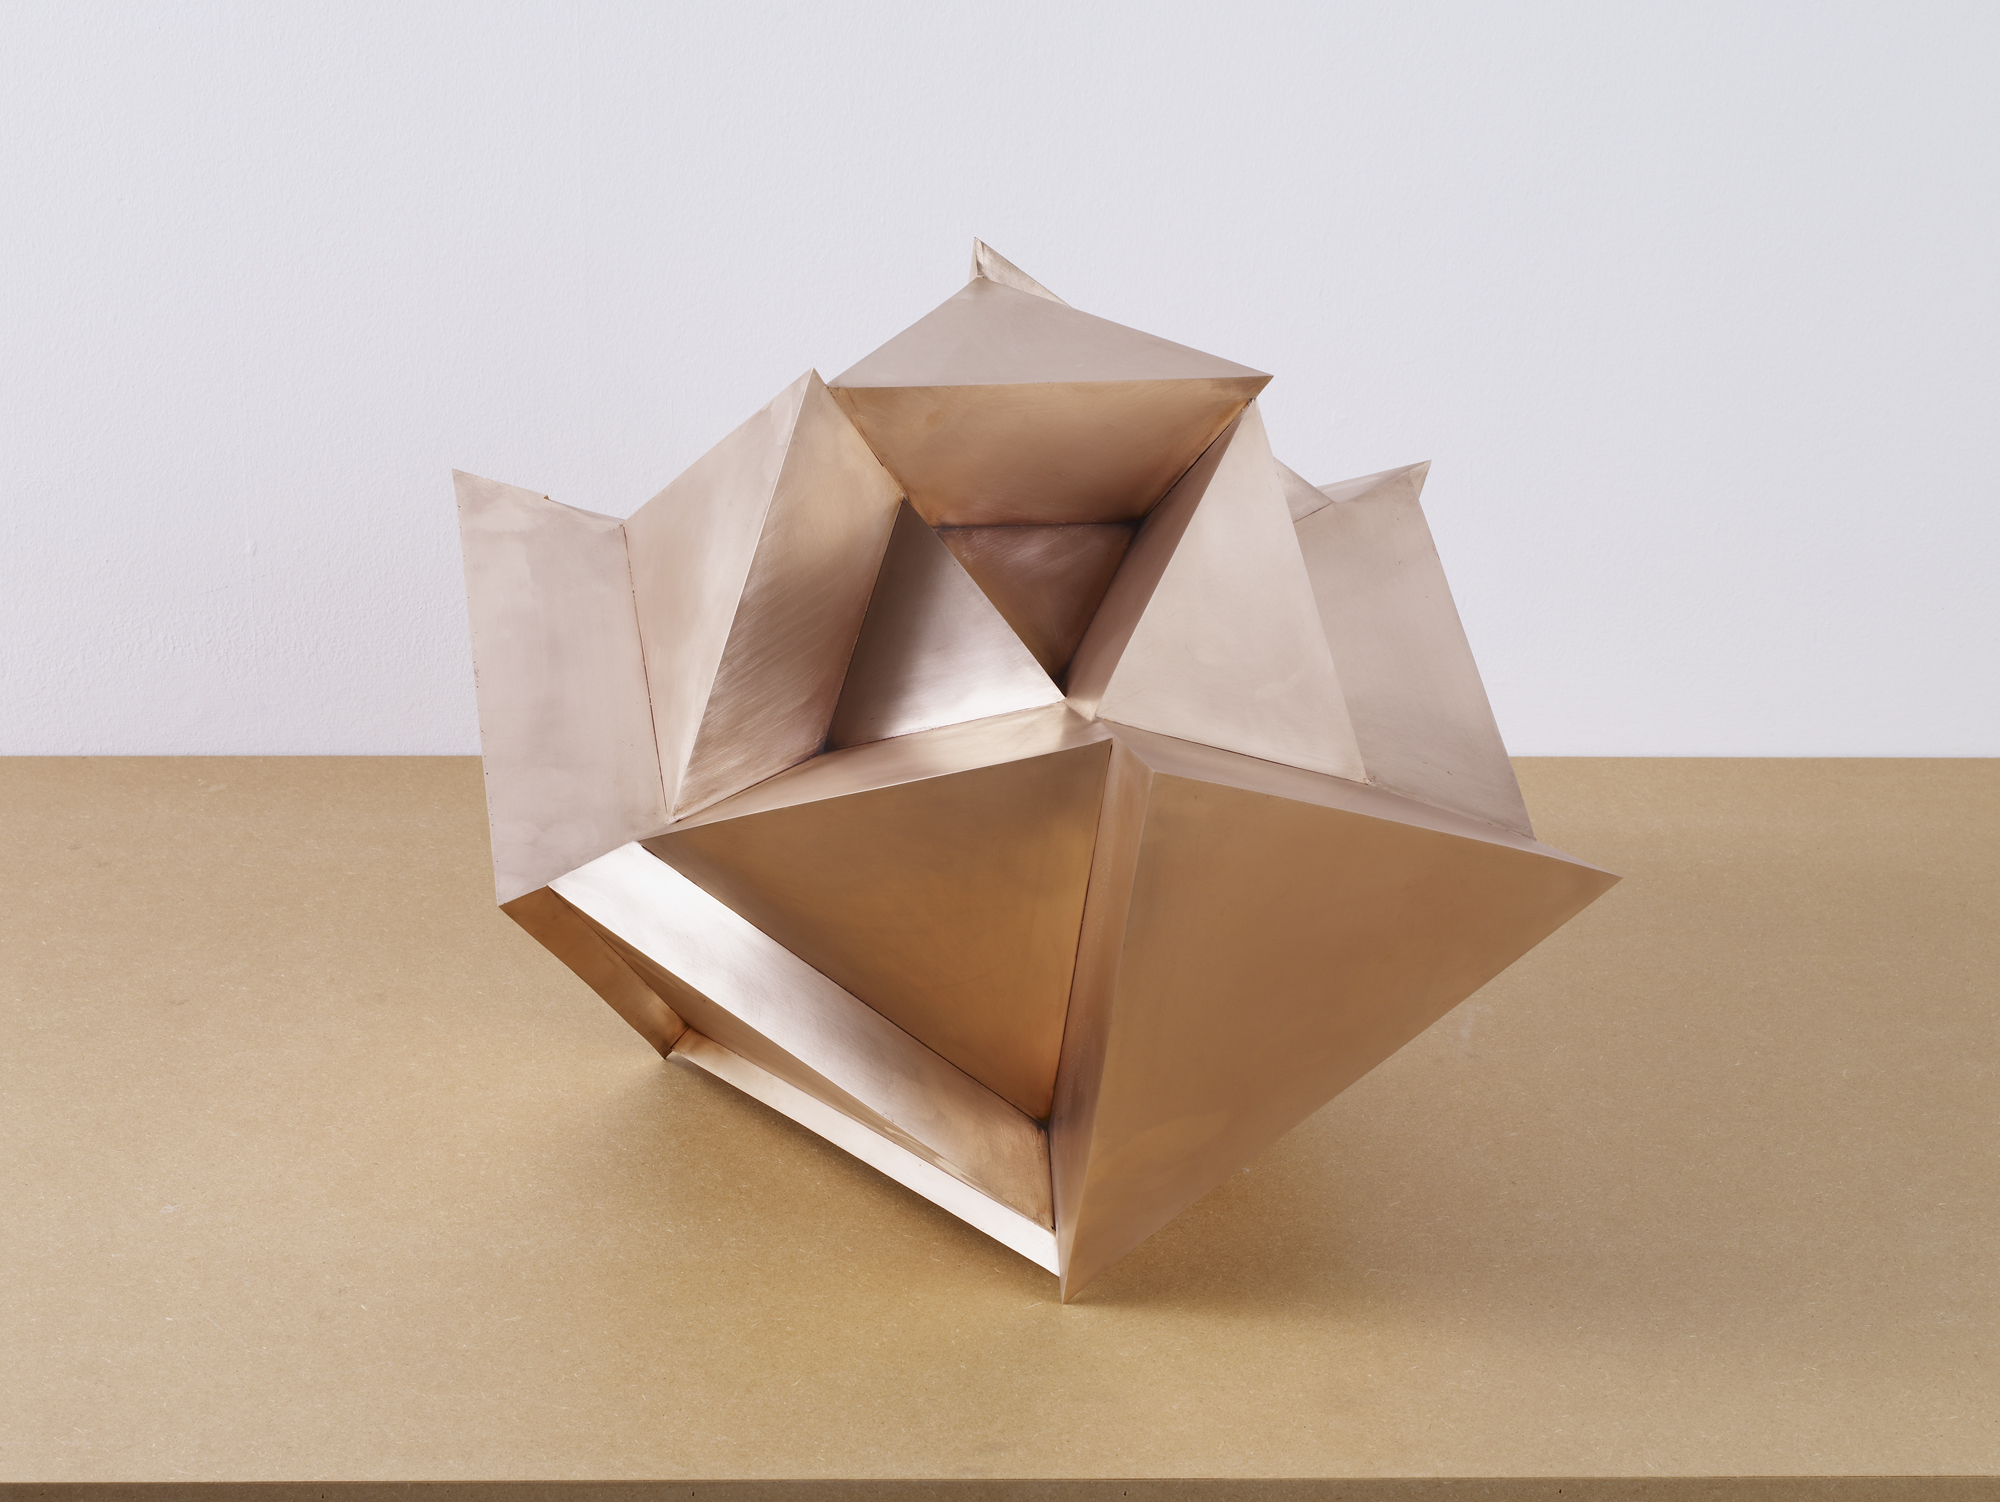 CS228_Perimeter Studies (Icosahedron) No.4 of Set 1_2011